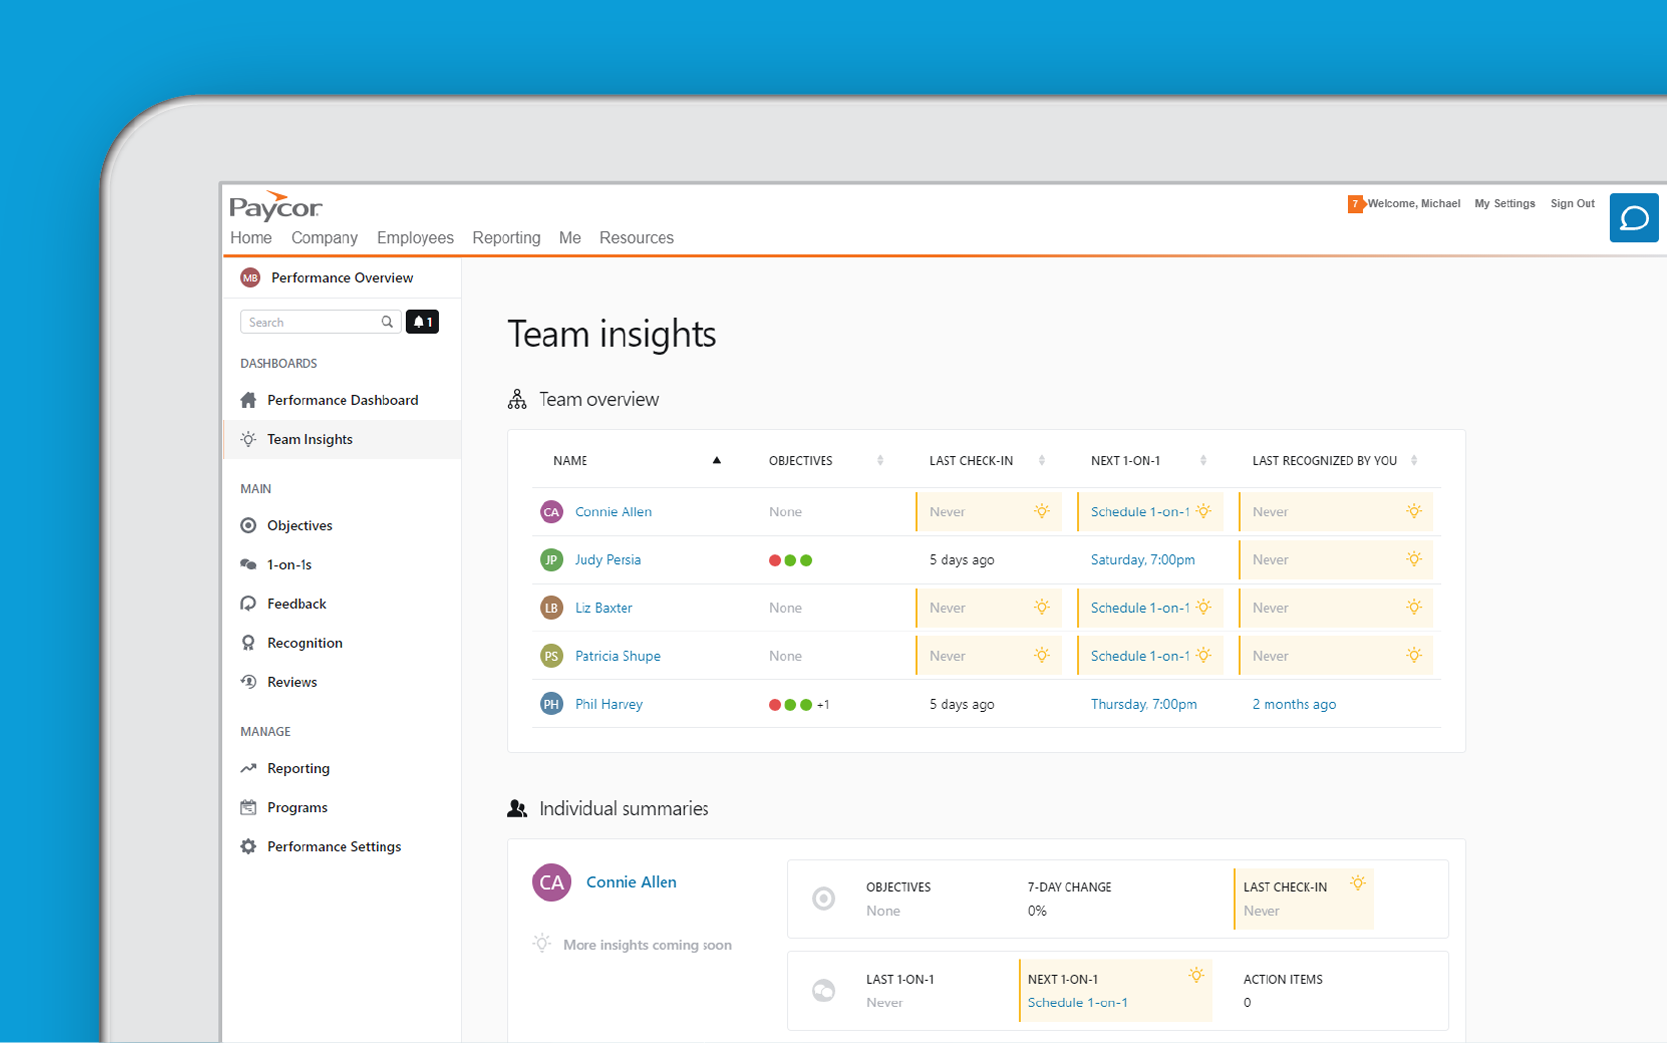 Corner of tablet showing Paycor team insights dashboard against blue background